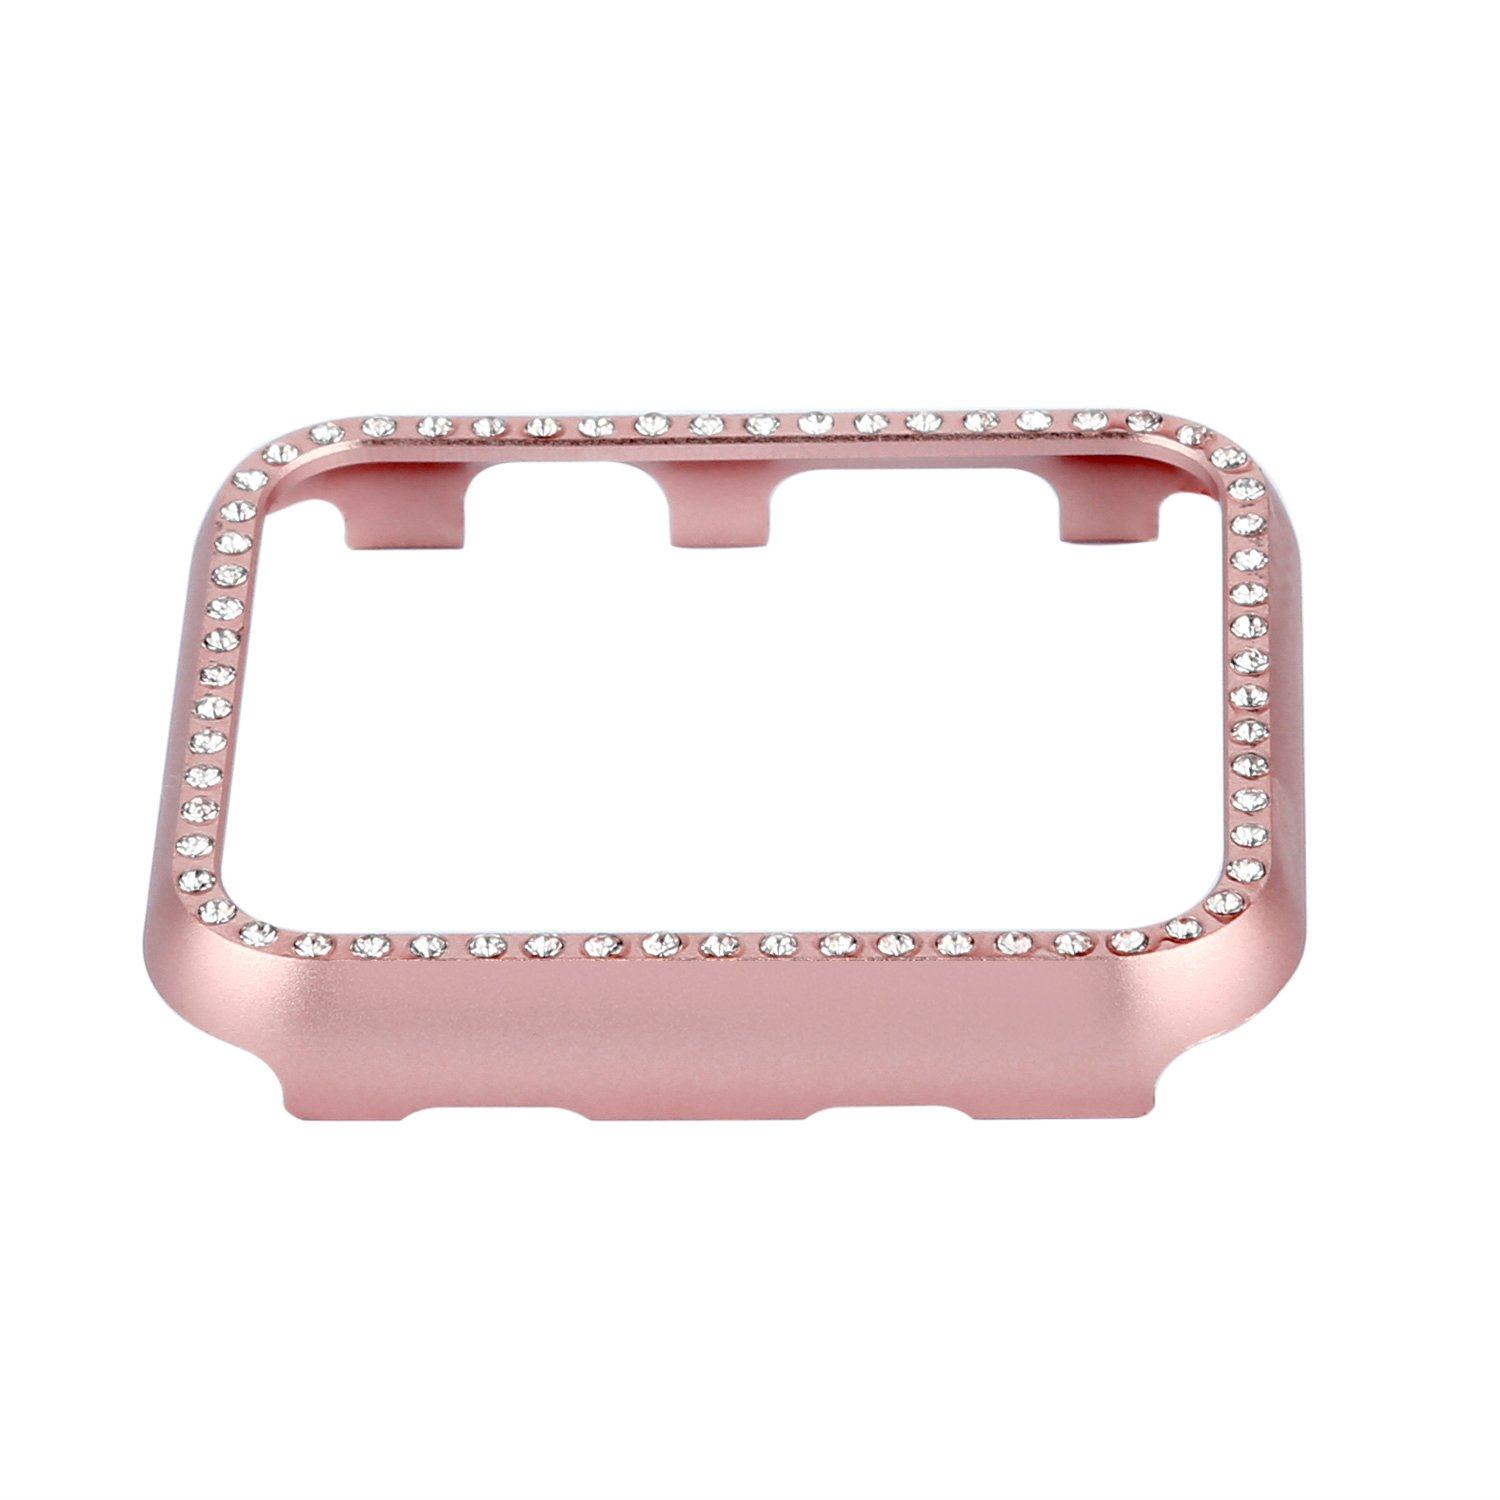 Apple Watch Bumper 42mm, iWatch Crystal Rhinestone Diamond Aluminum Case Shell Protective Frame Cover for 42mm Apple Watch Series 3/2/1 - Rose Gold by Clatune (Image #1)